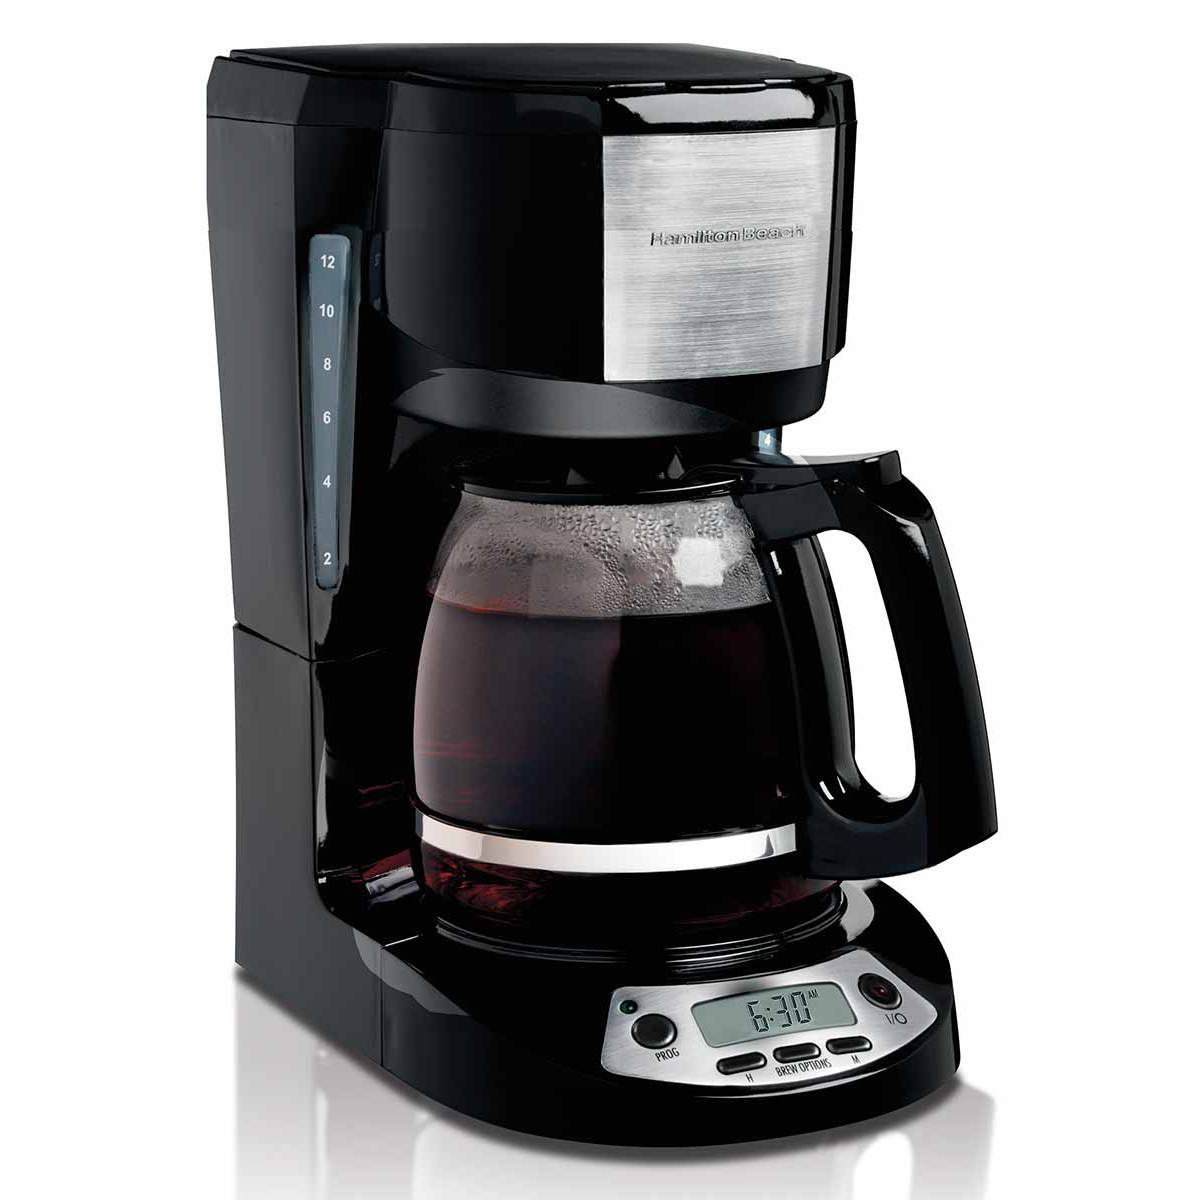 Hamilton Beach Coffee Maker 12 Cup Programmable With 3 Settings Black 49615